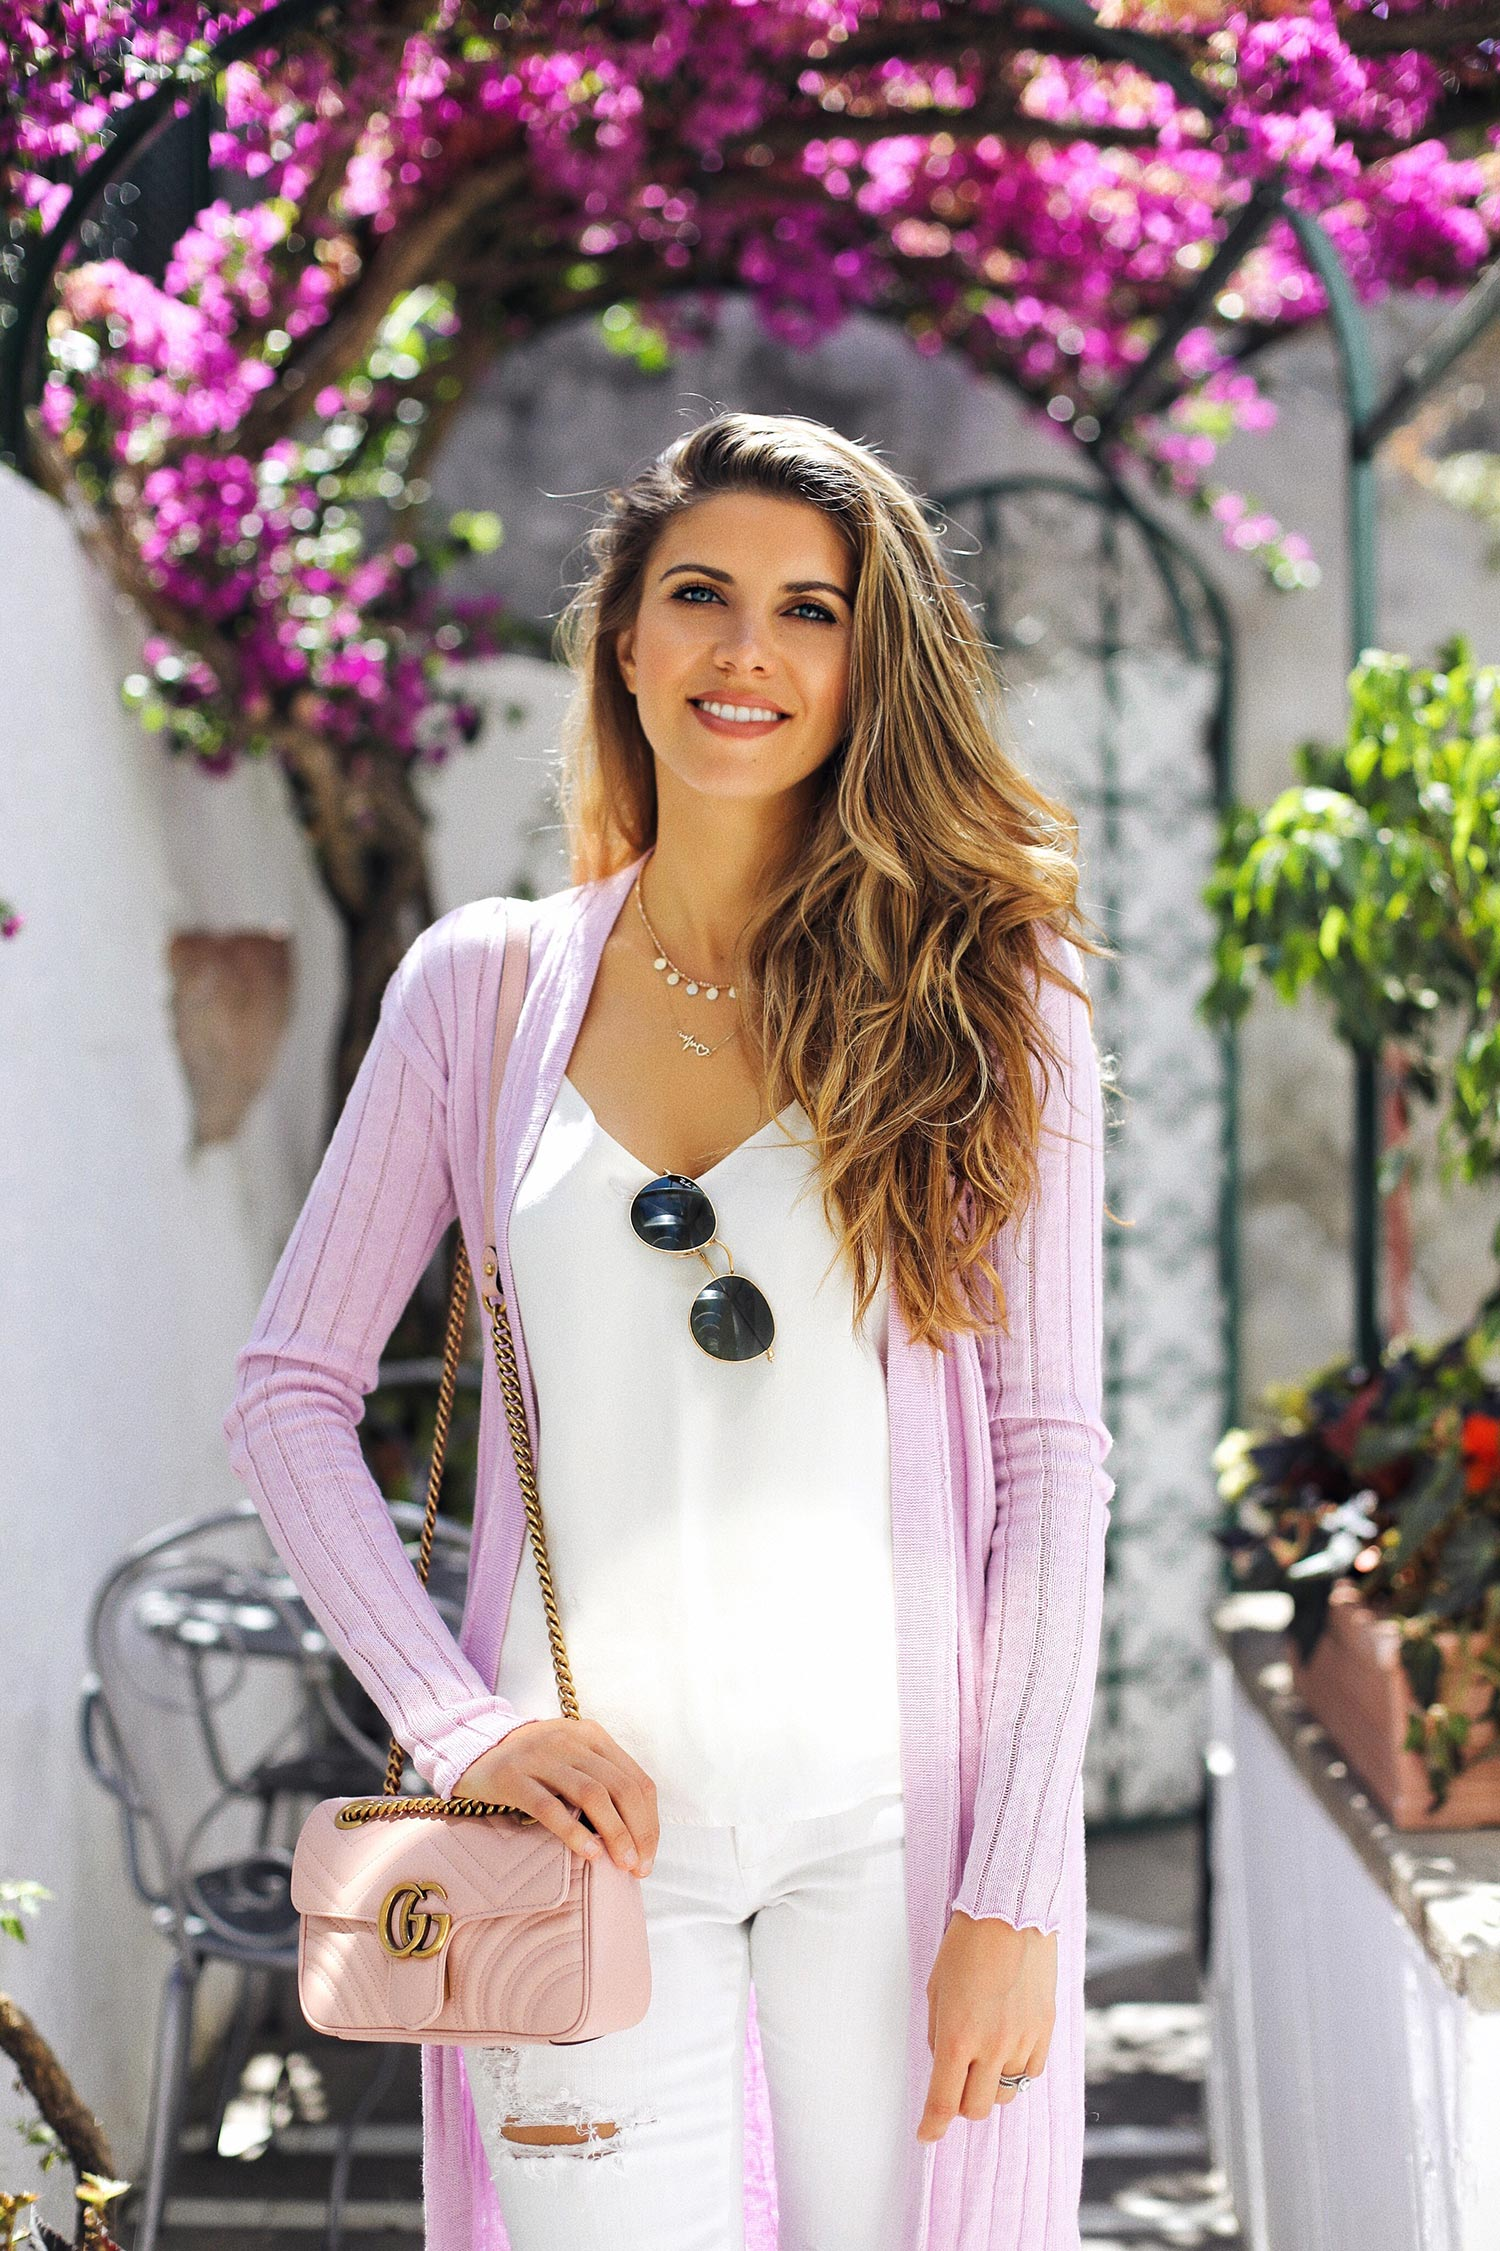 Fashion and lifestyle blogger Adelina Perrin of The Charming Olive sharing the best skincare for travel, wearing Gucci marmont bag, l'agence cami, lavender cardigan.